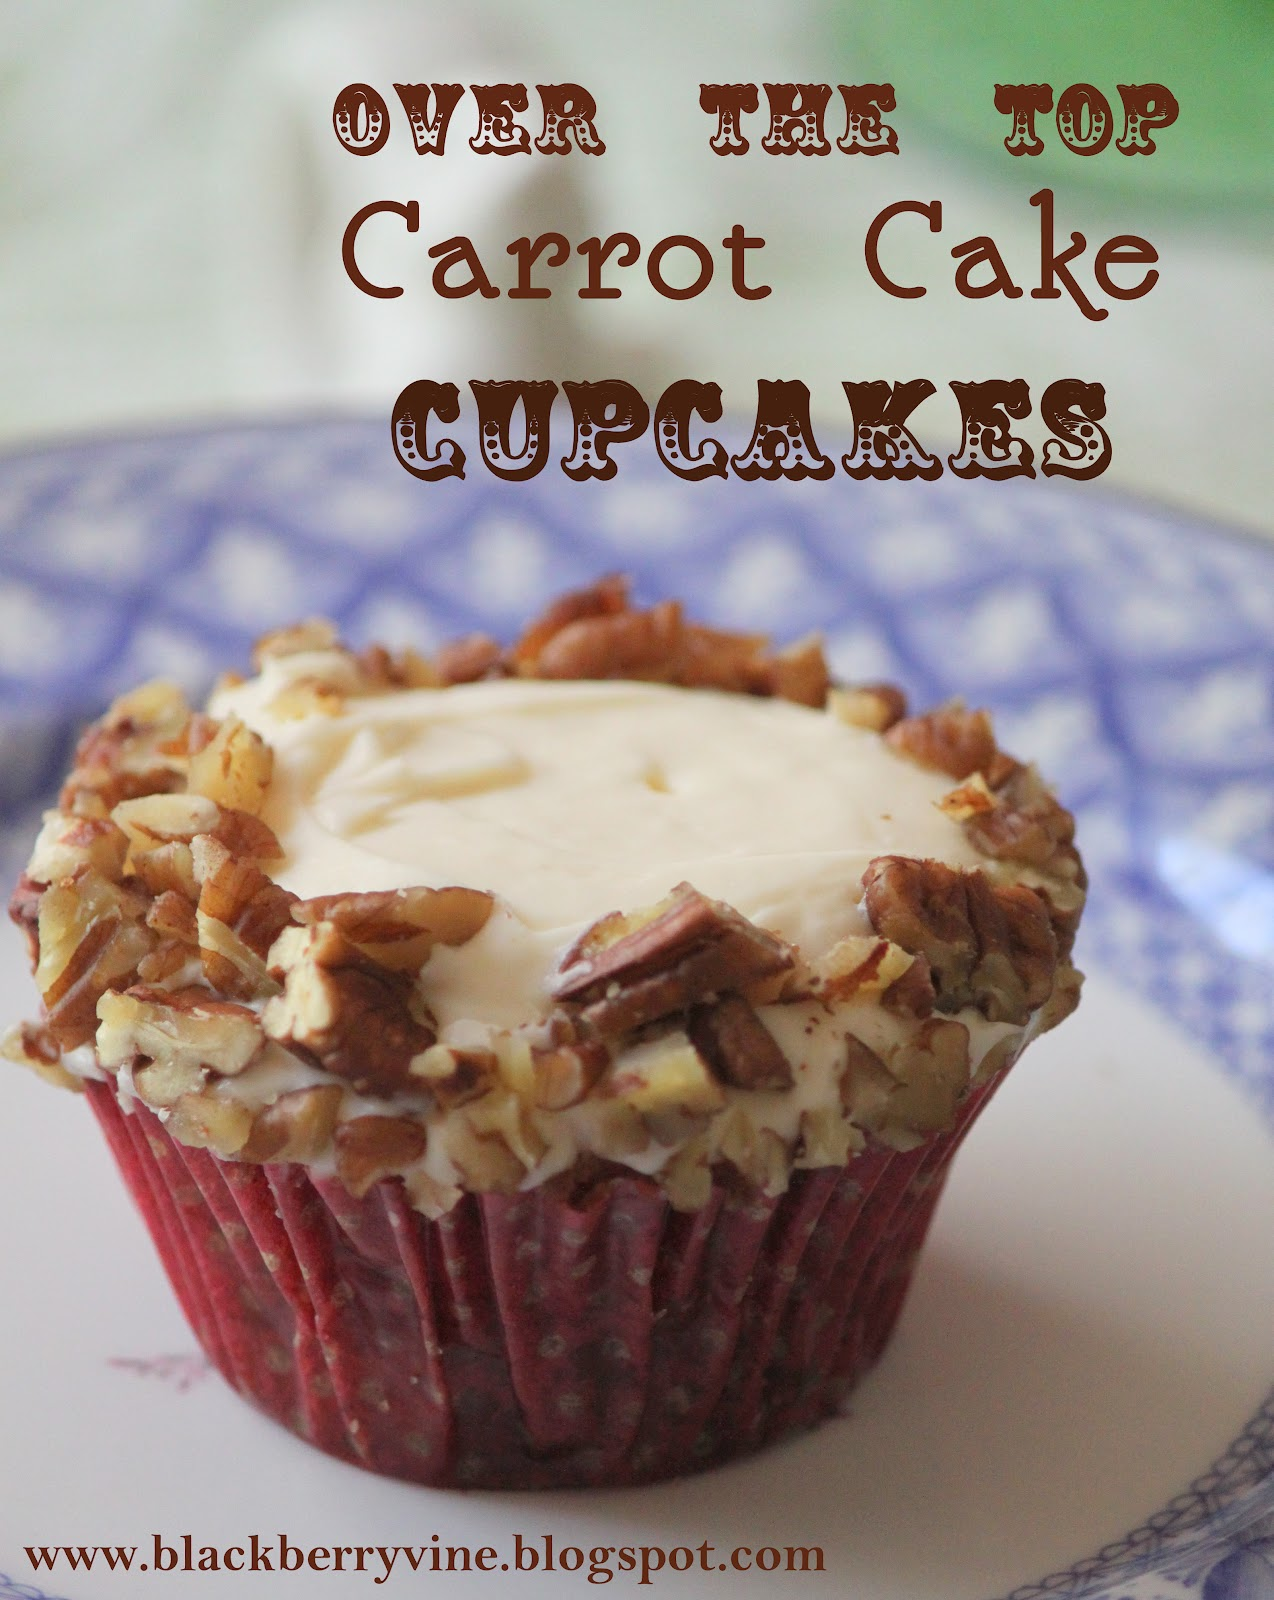 The Blackberry Vine: Over the Top Carrot Cake Cupcakes